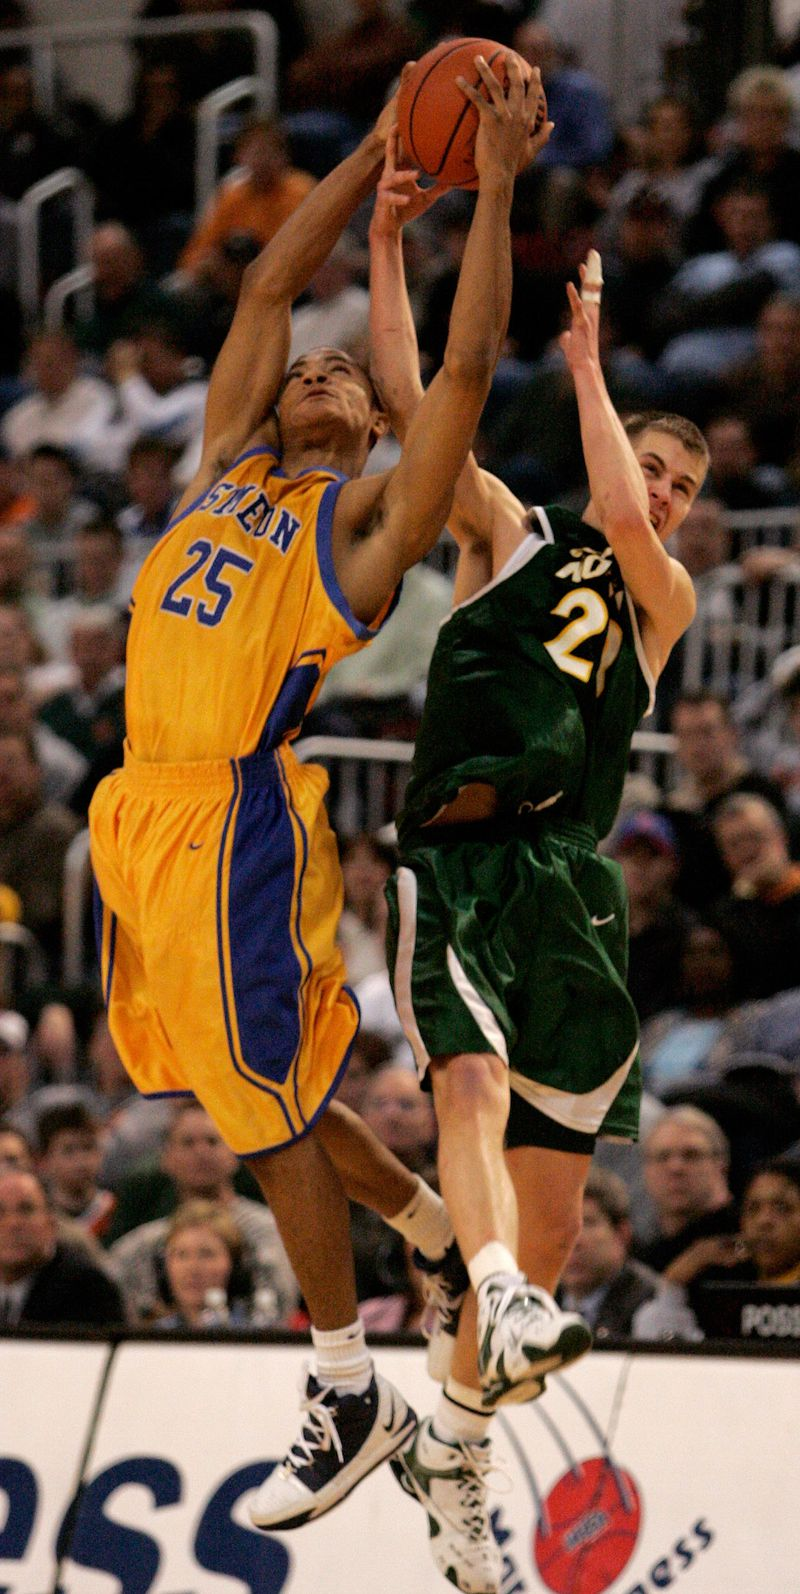 Glenbrook North's Jonathan Scheyer, right, and Simeon's Derrick Rose (25) go for the ball during the fourth quarter of the quarterfinals of the IHSA boys' Class AA state basketball tournament in Peoria, Ill., Friday, March 17, 2006.